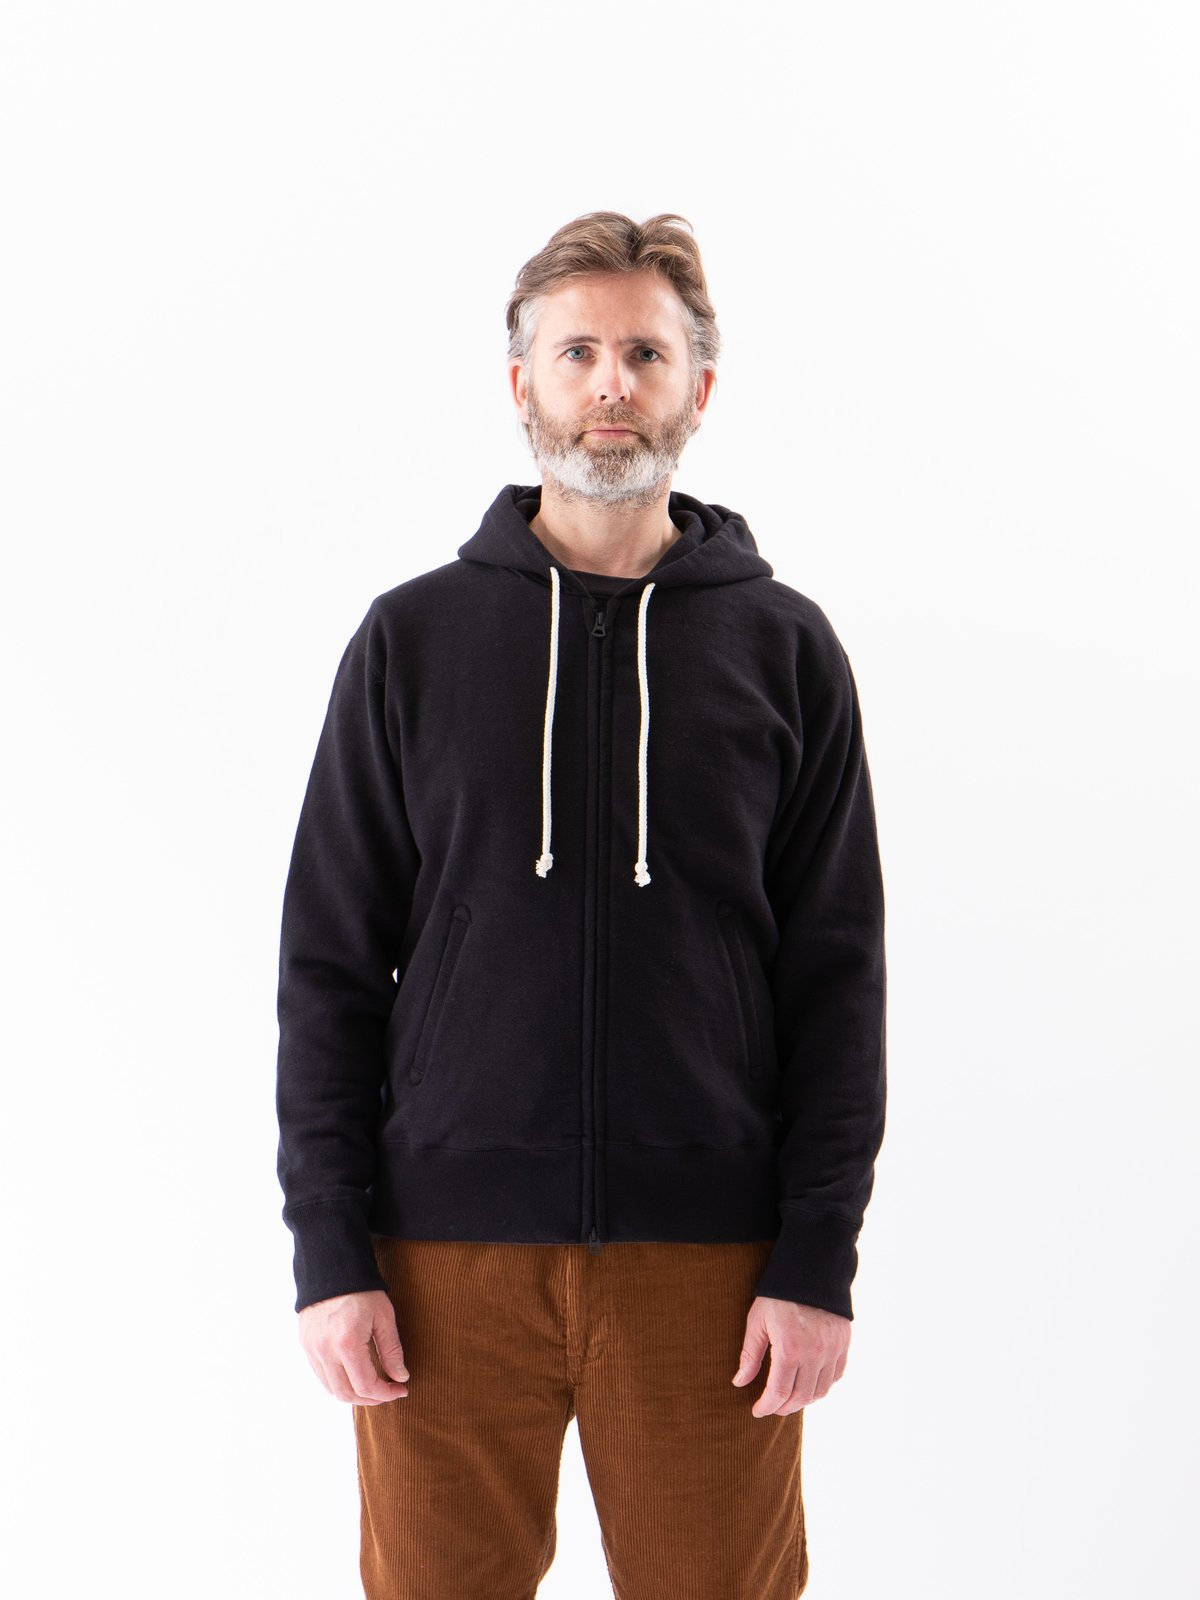 Black GG Full Zip Sweatshirt - Image 2